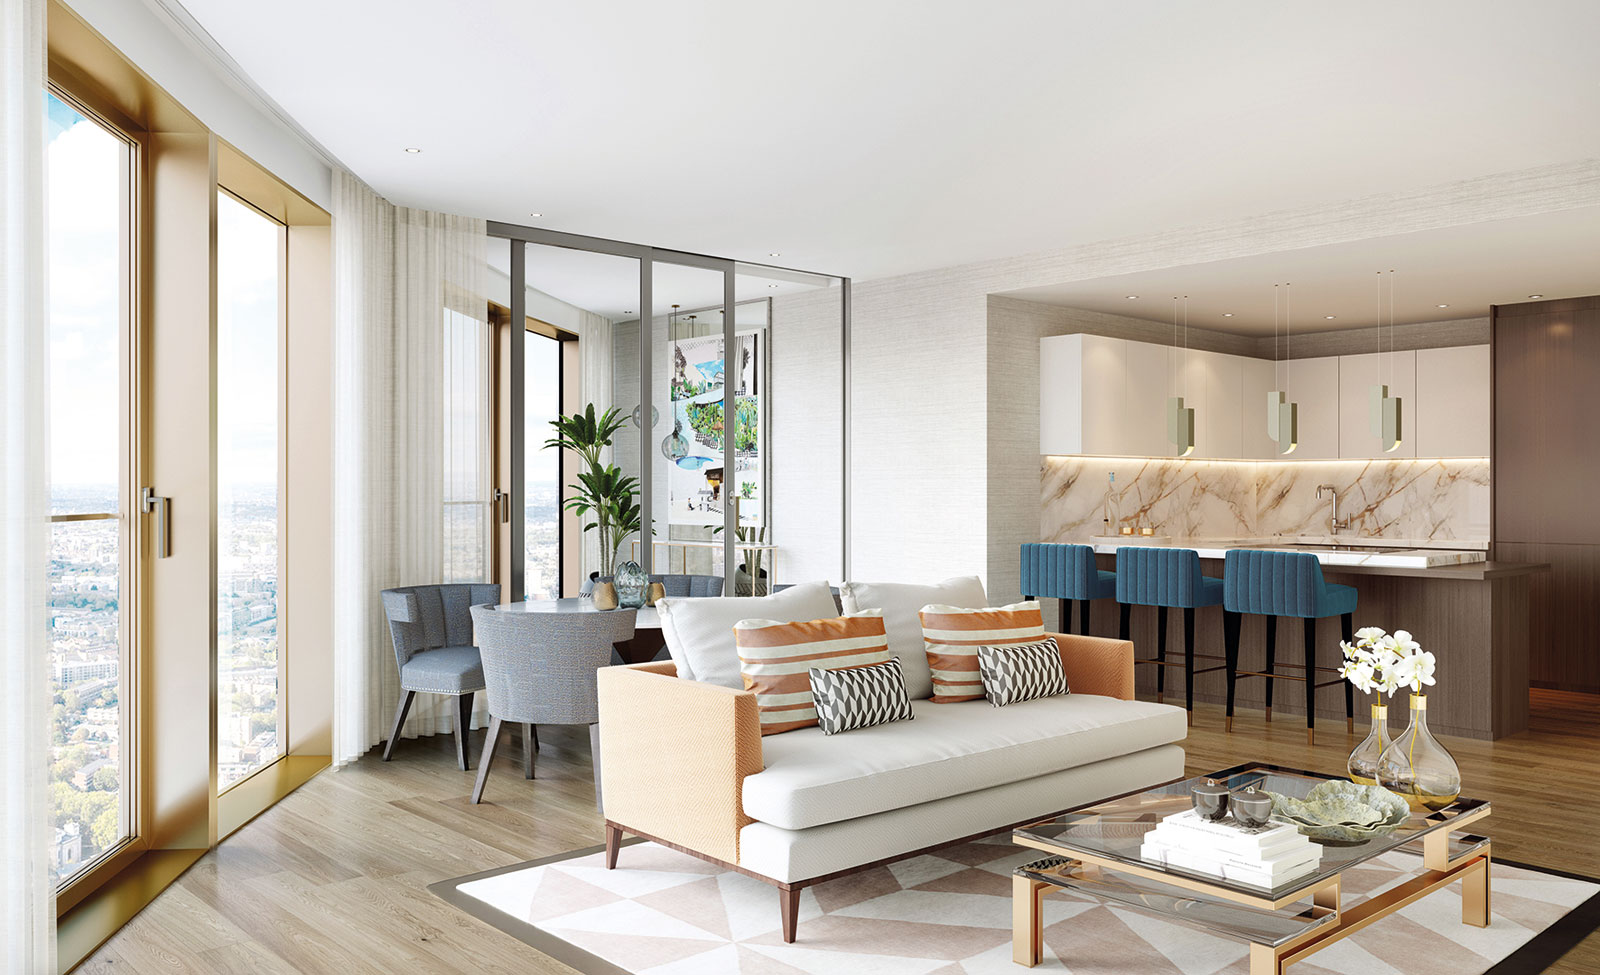 Spire London will provide 861 apartments of which 765 are for private sale